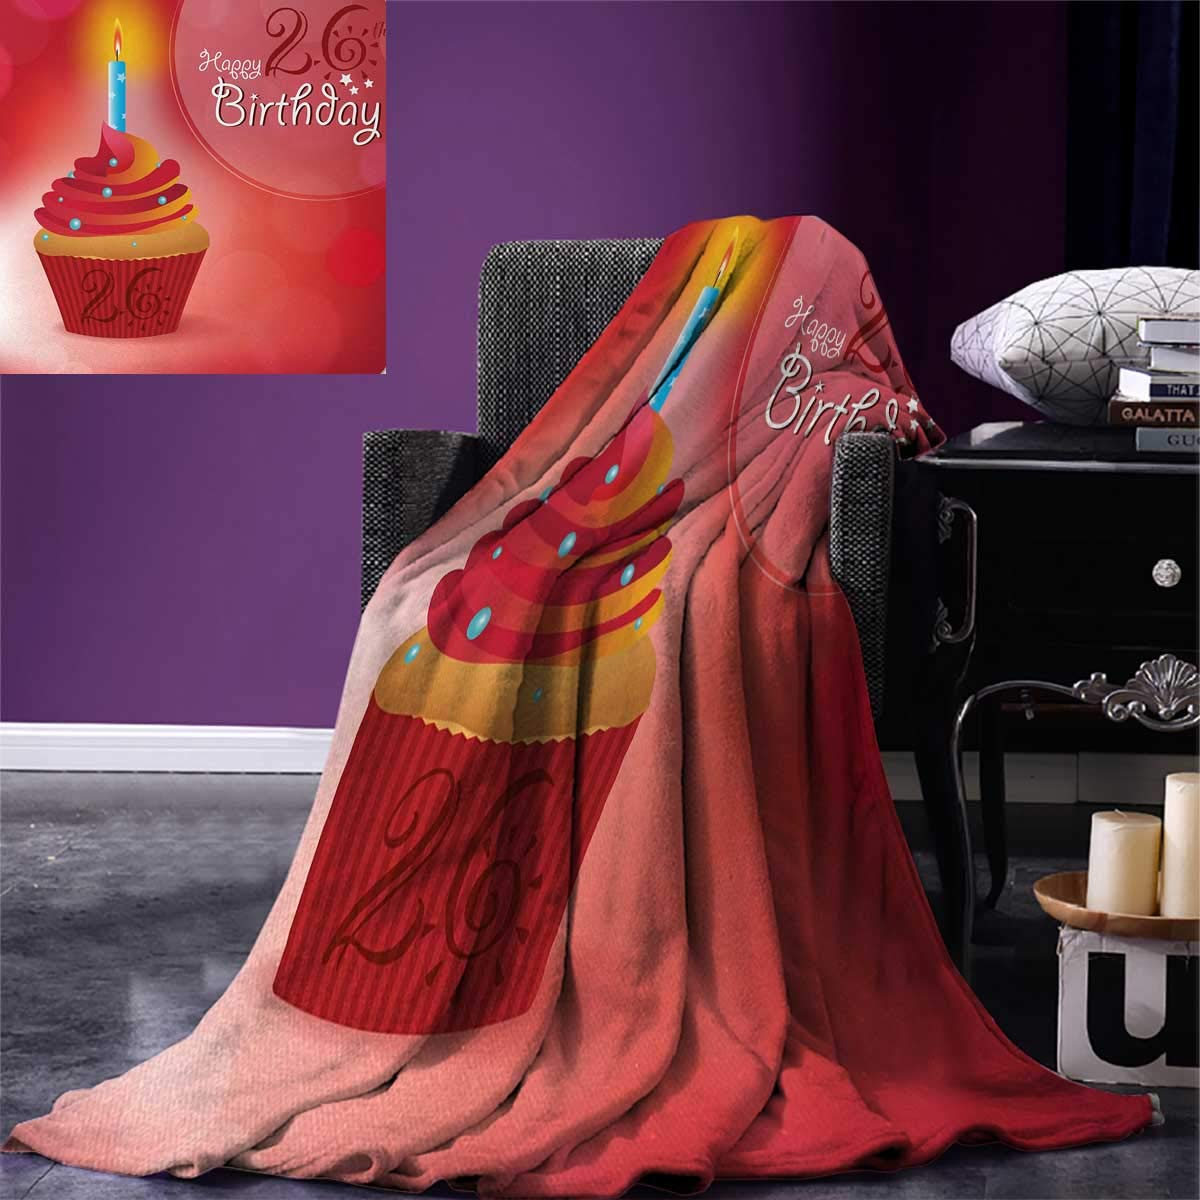 26th Birthday Digital Printing Blanket Romantic Little Yummy Cupcake Lovers Surprise Valentines Themed Print Summer Quilt Comforter 80''x60'' Ruby Orange Blue